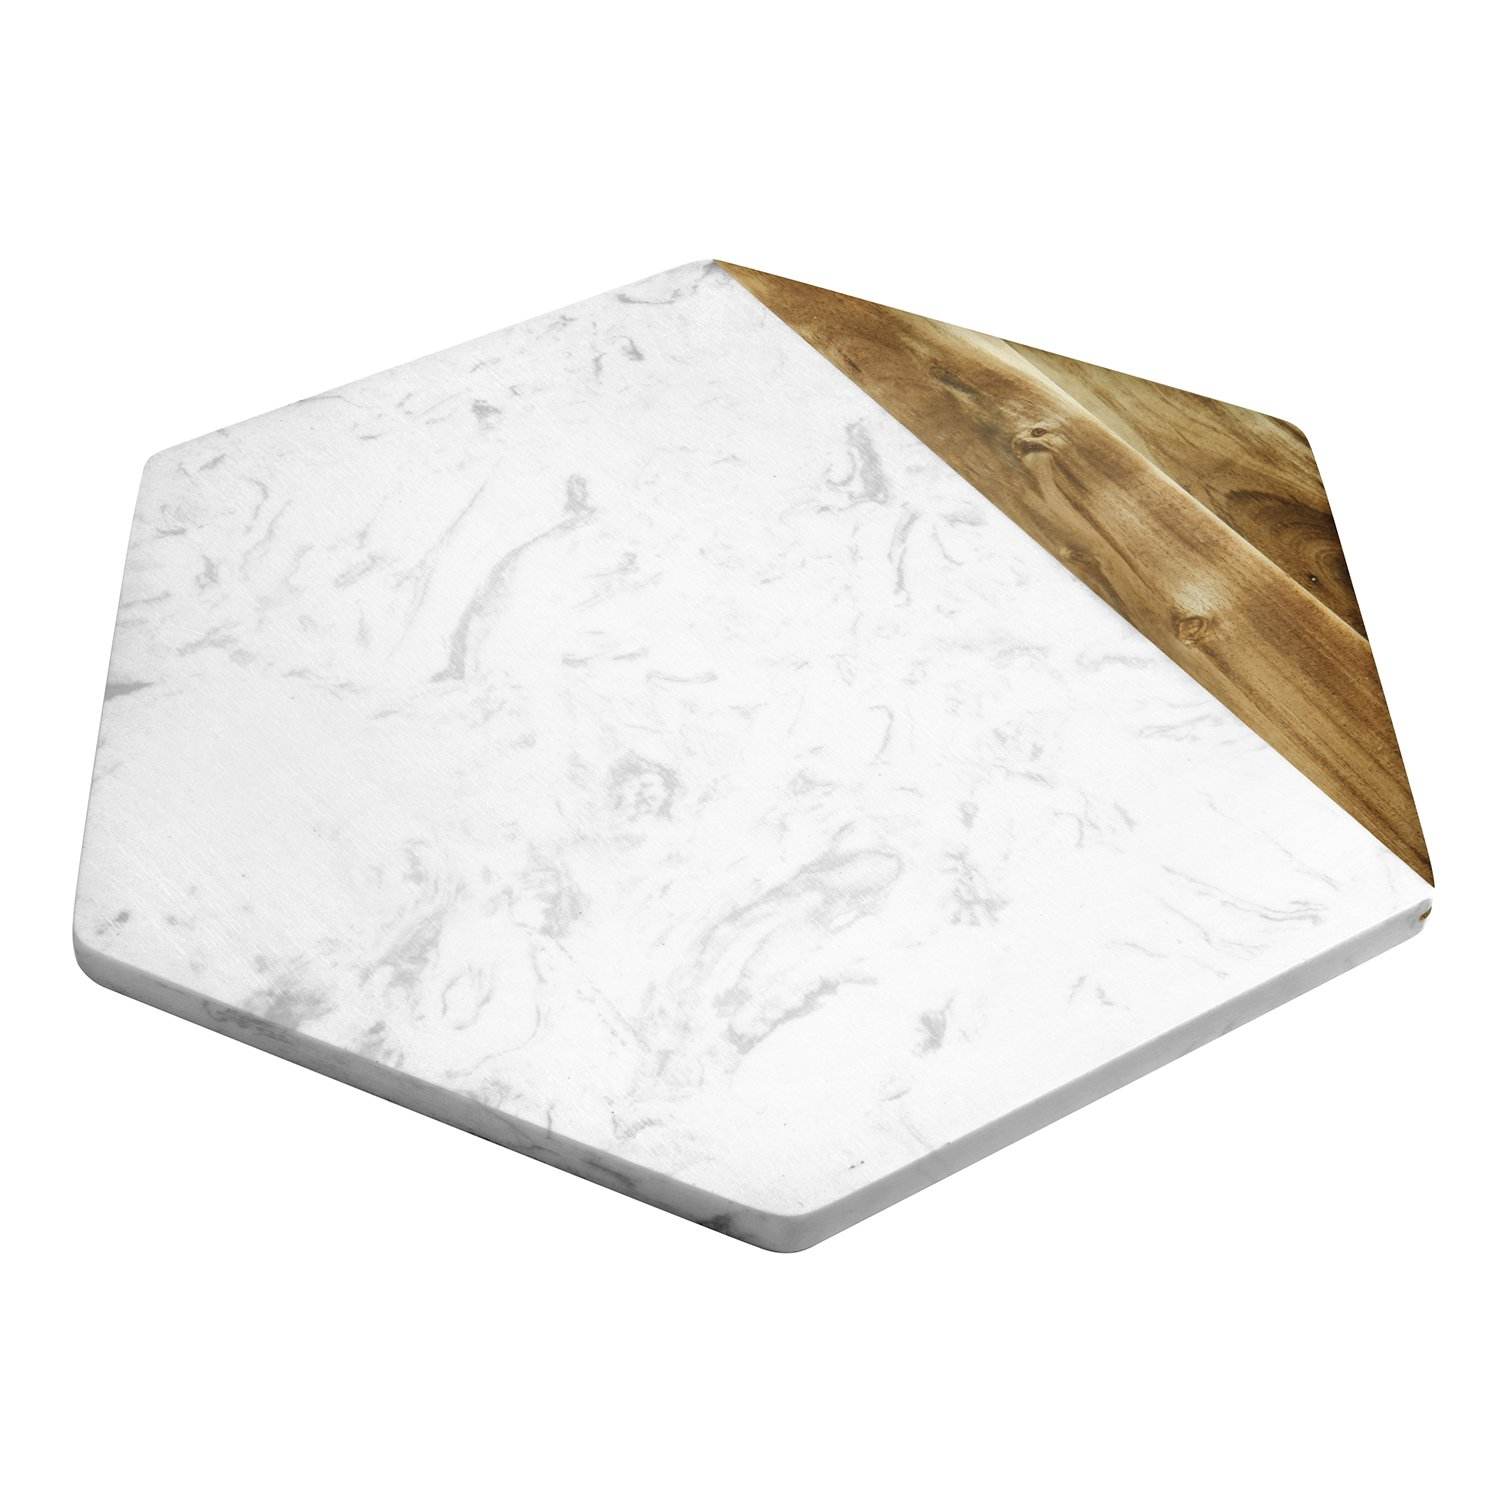 TOPHOME Cheese Board Versatile Rectangle Marble and Acacia Wood Pastry Board Appetizer Serving Board BeefSteak Server Bread Plate Pizza Trays Christmas Wedding Party TH-Clangel-NM